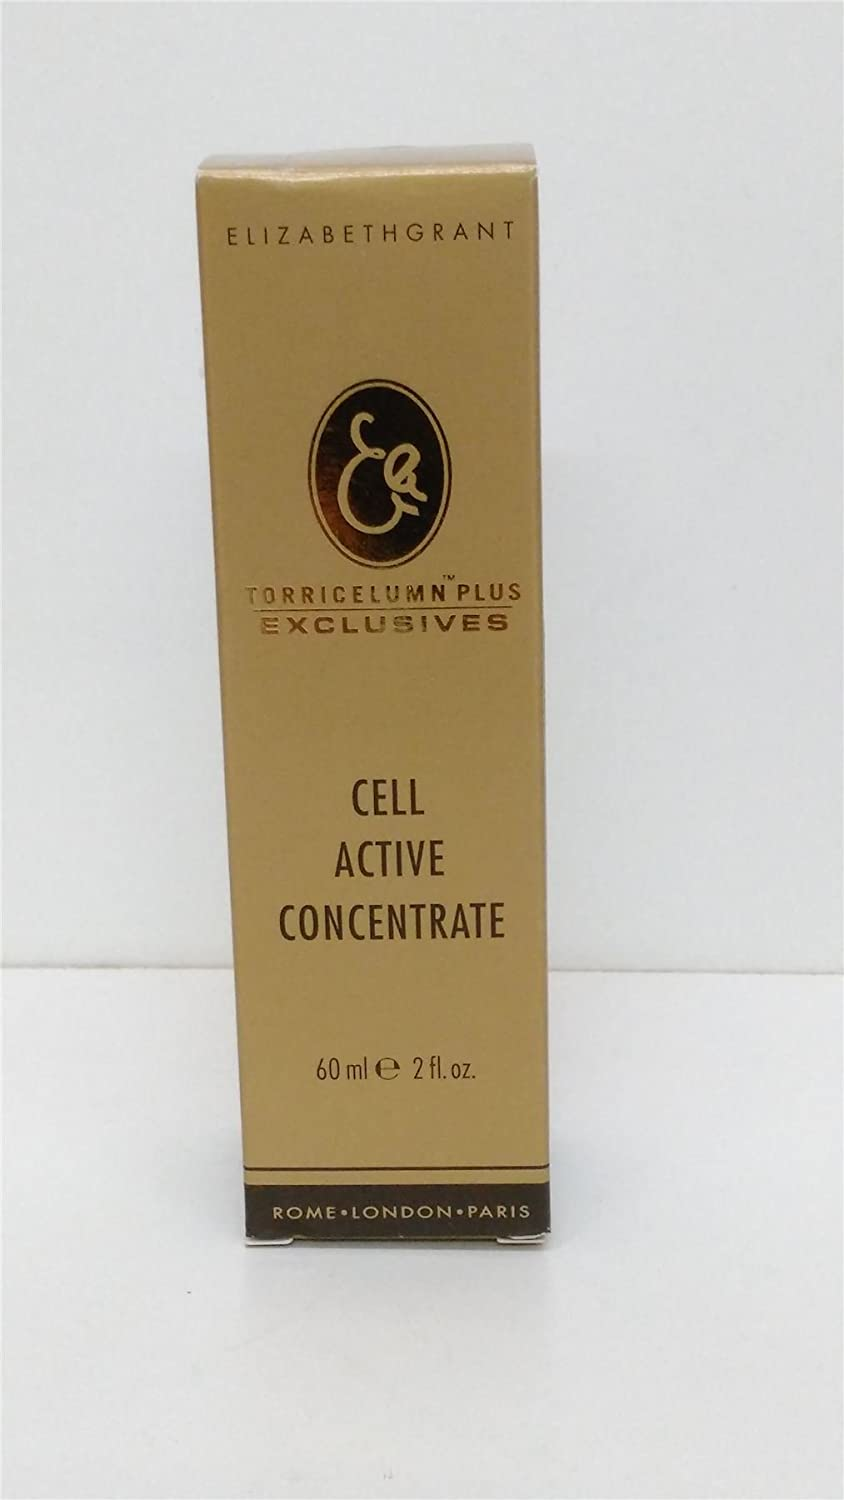 Elizabeth Grant Torricelumn Plus Exclusives Cell Active Concentrate 60ml